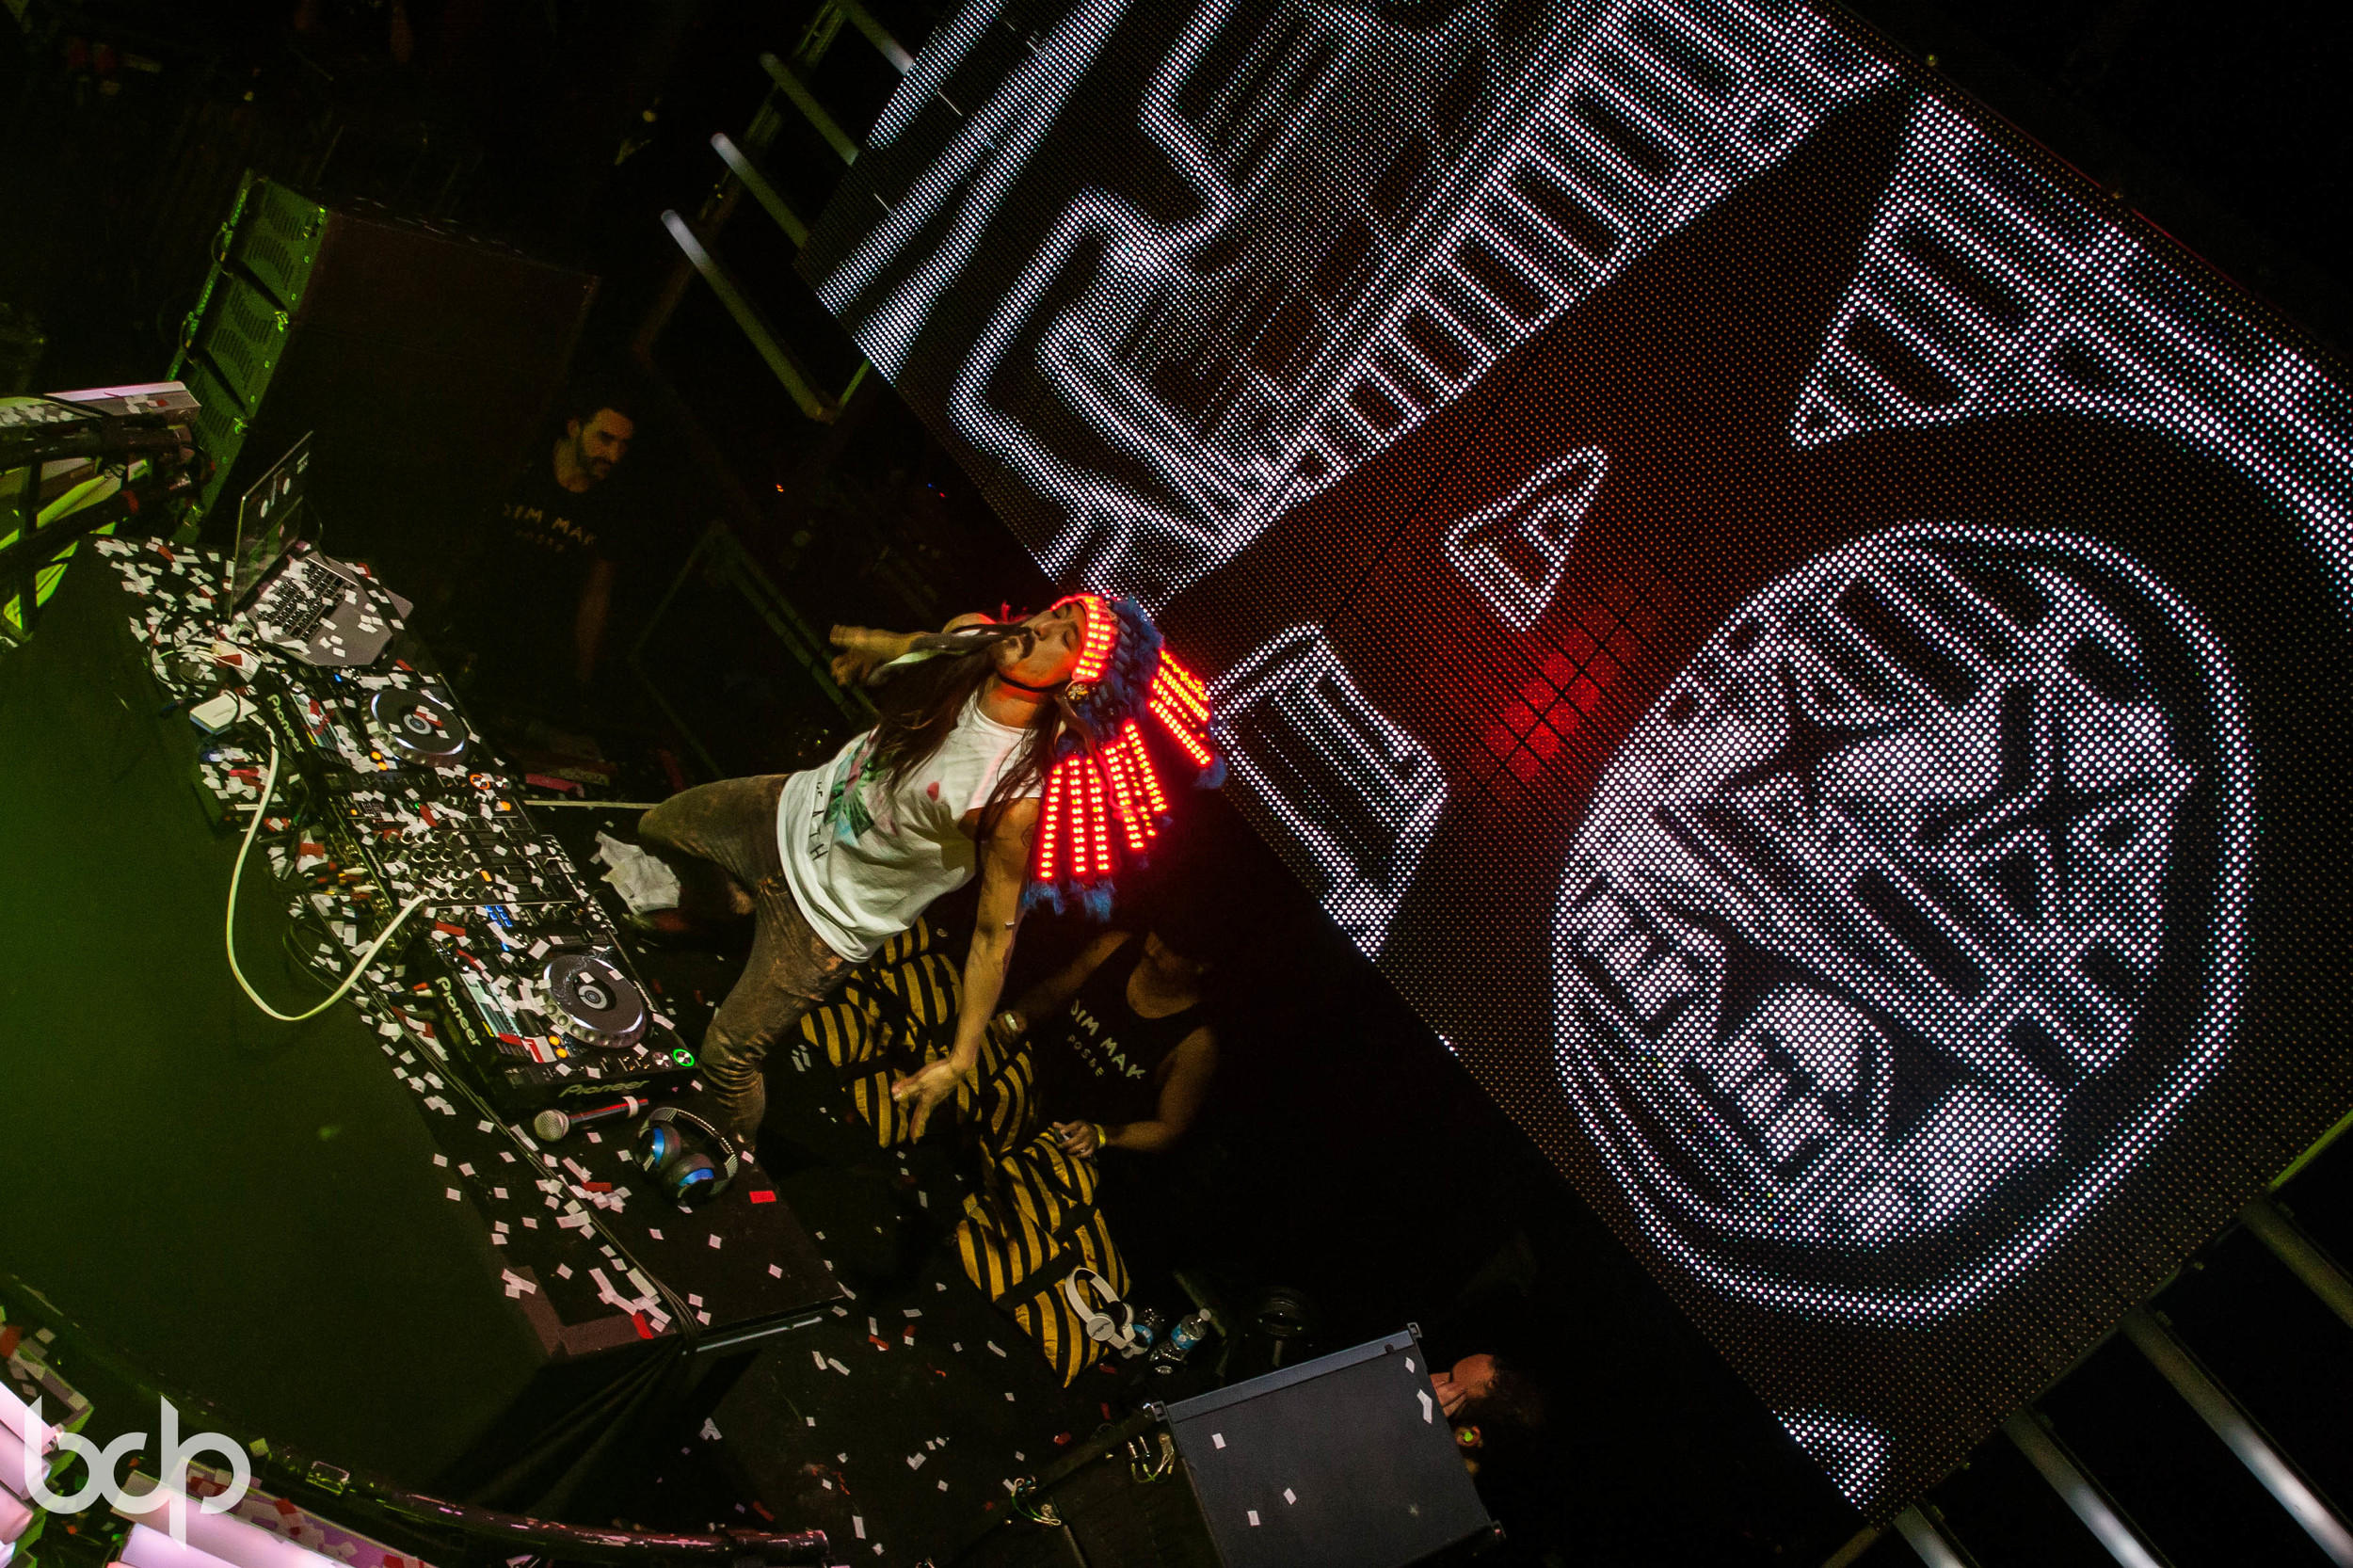 Aokify America Tour at Epic at Epic 110913 BDP-86.jpg